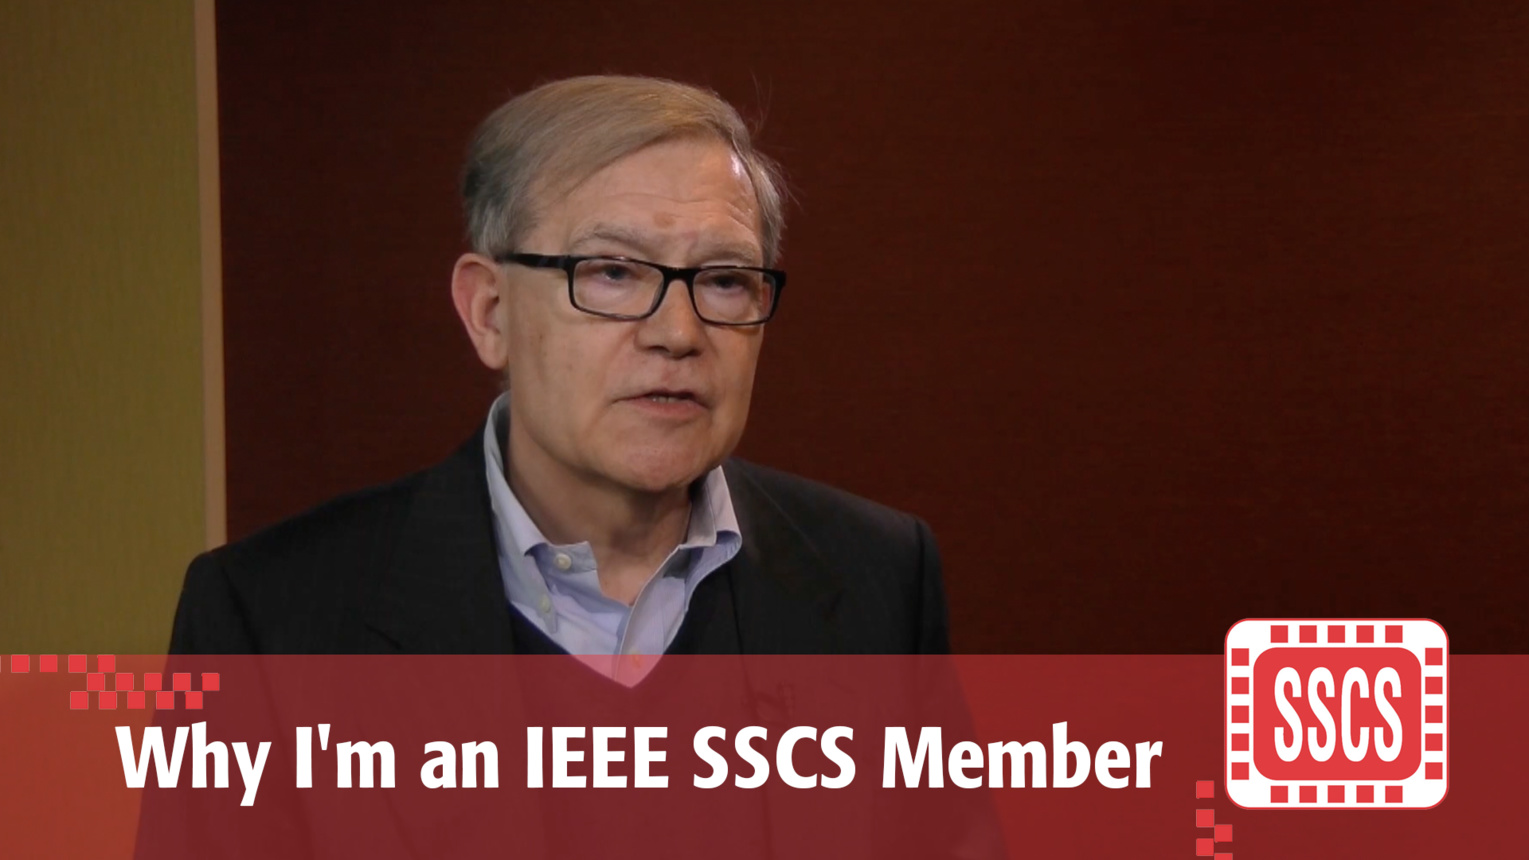 Why I'm an IEEE SSCS Member